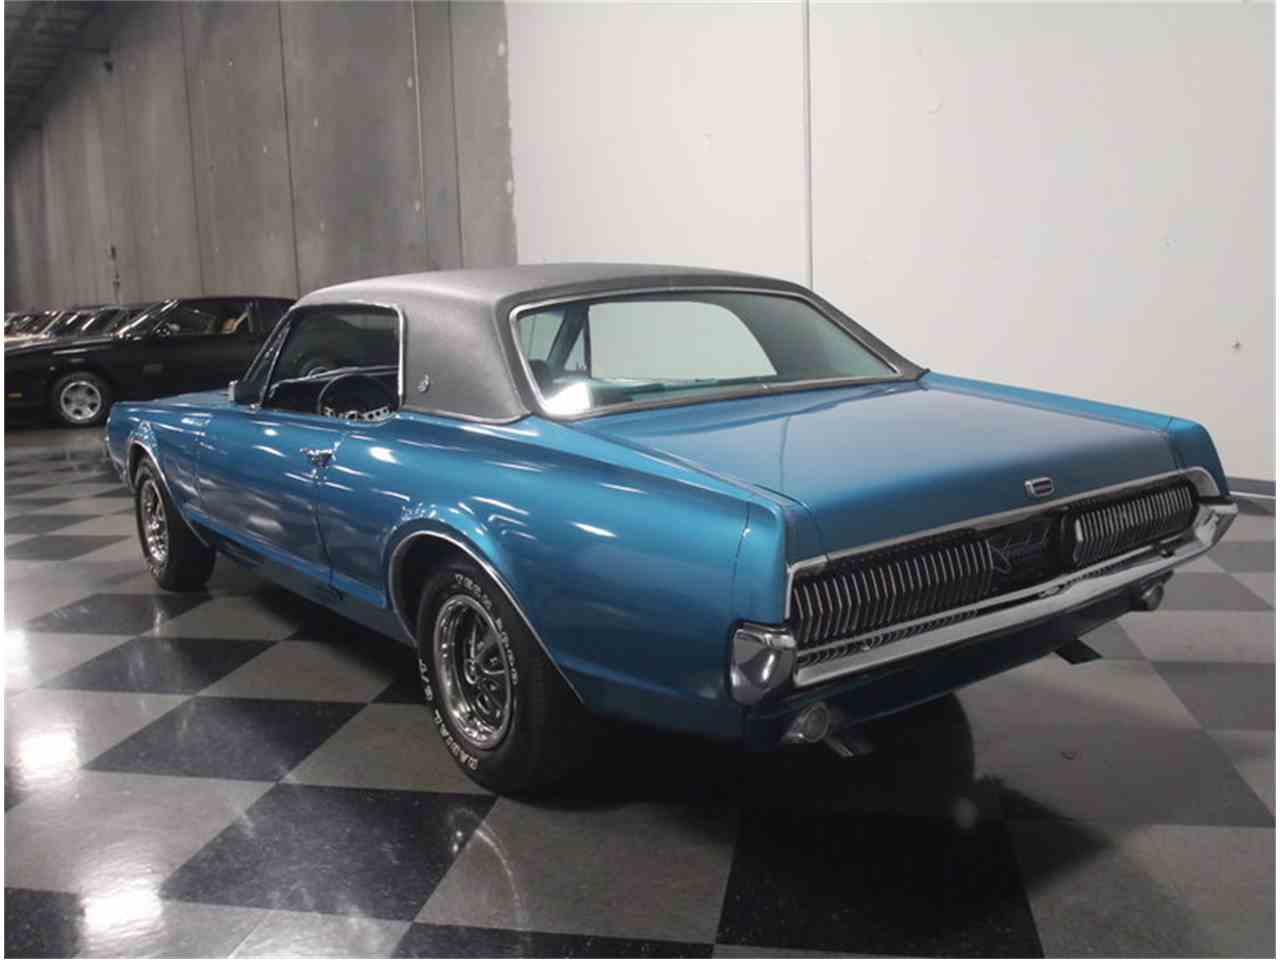 Large Picture of Classic 1967 Mercury Cougar located in Georgia - $15,995.00 Offered by Streetside Classics - Atlanta - M9SJ